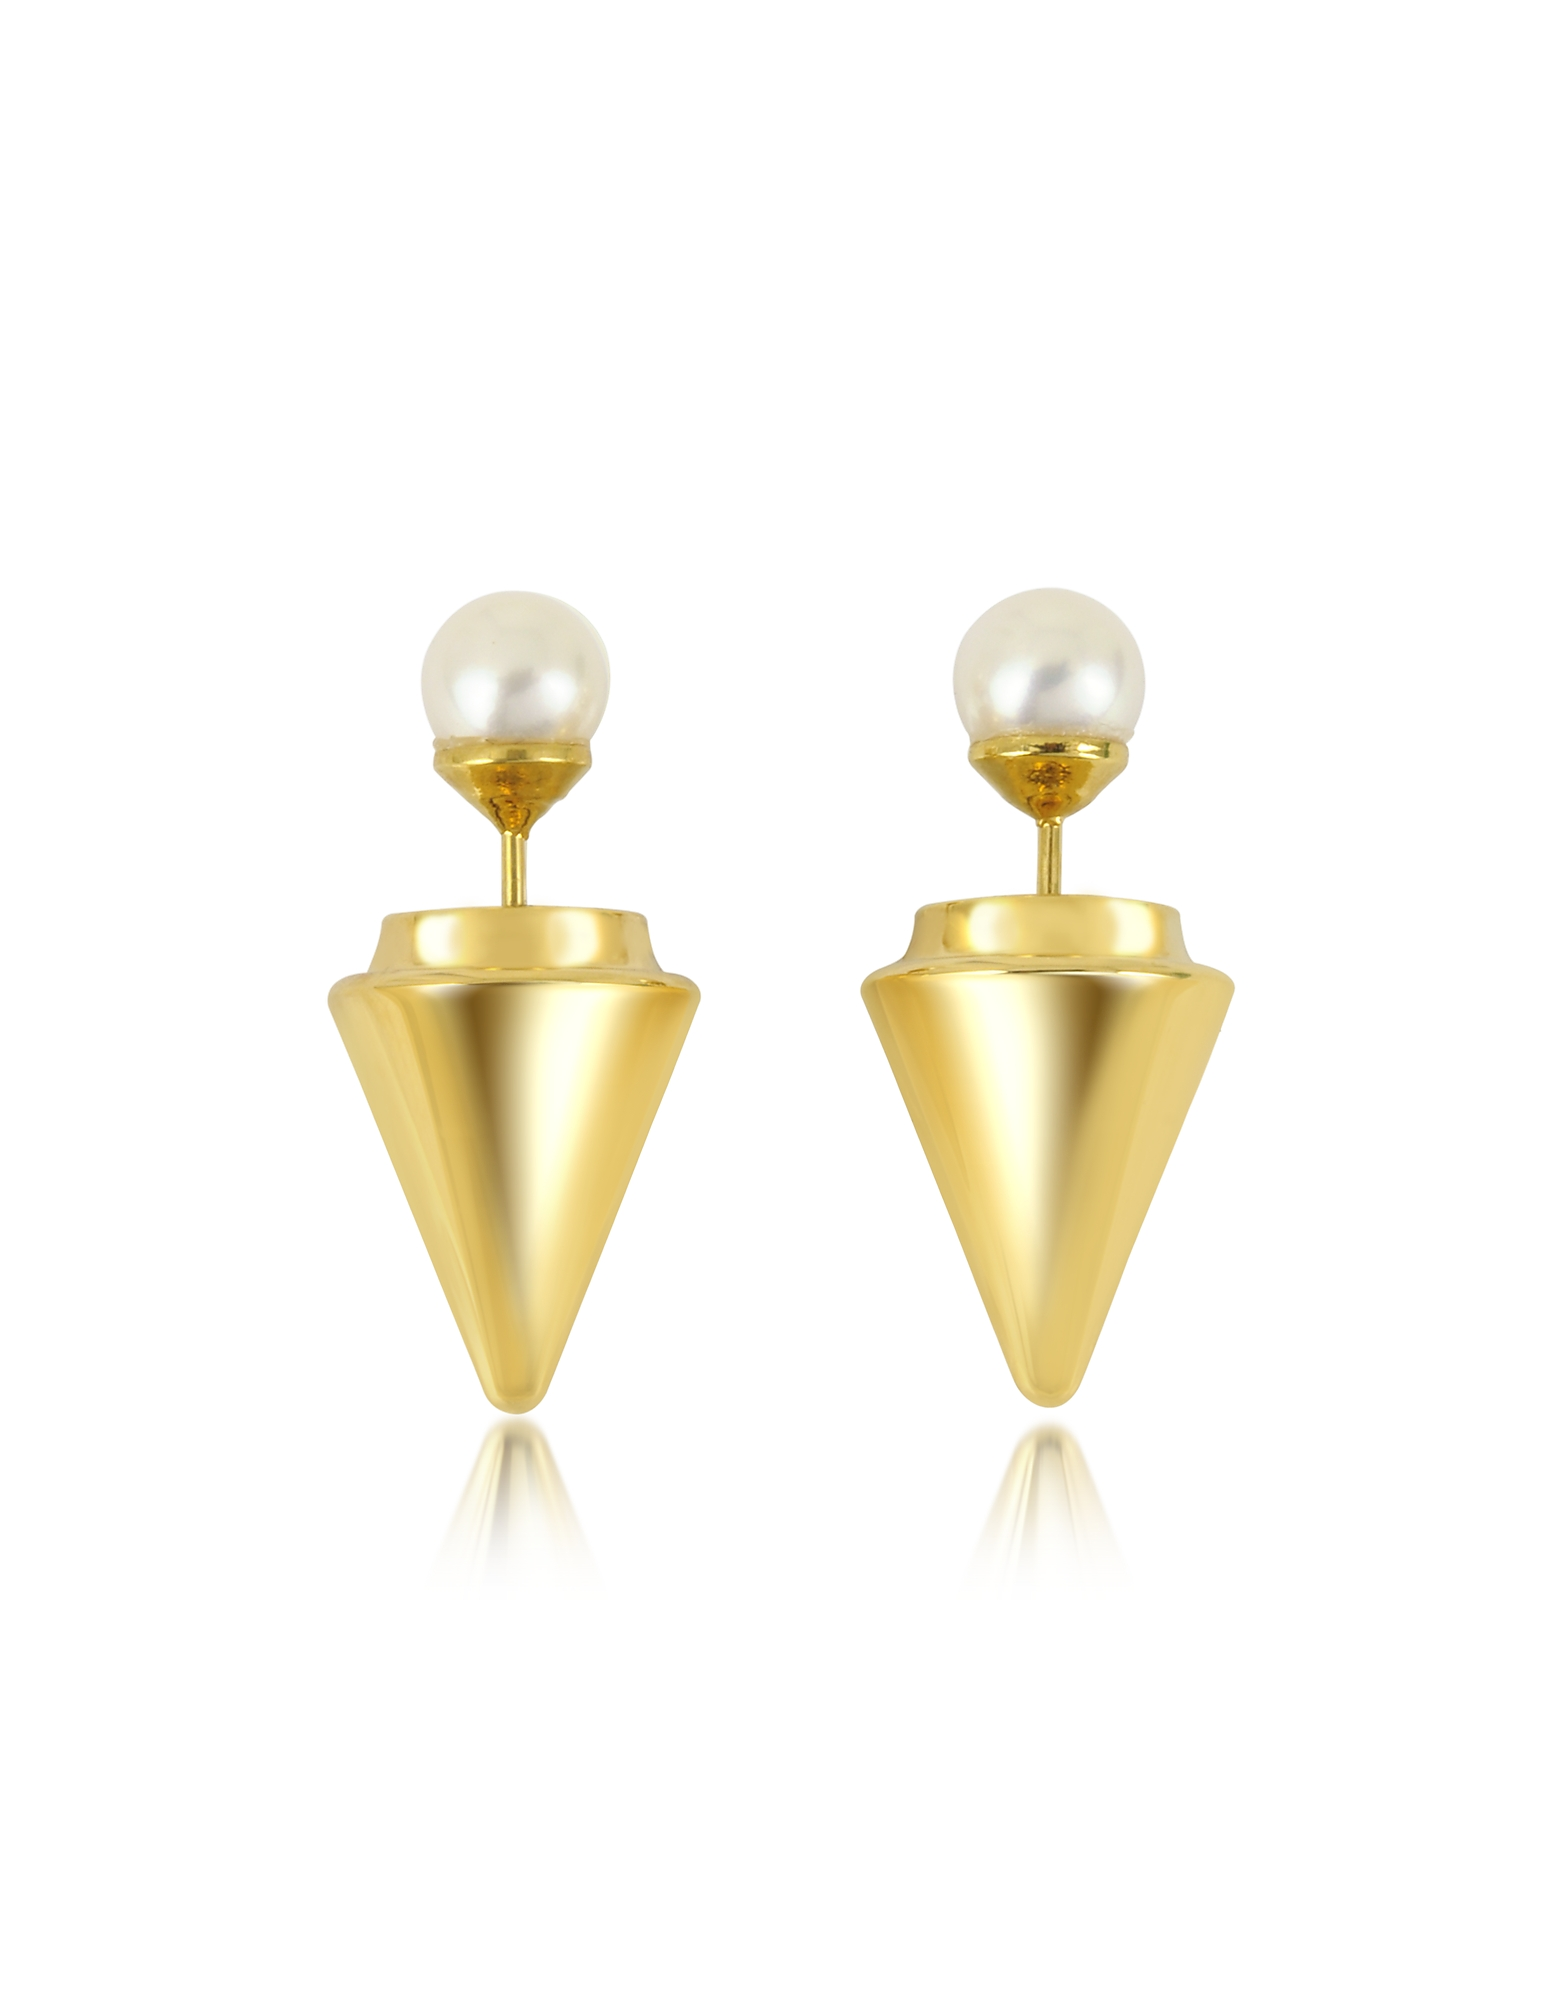 Vita Fede Earrings, Gold Plated Double Titan Pearl Earrings w/Akoya Pearls